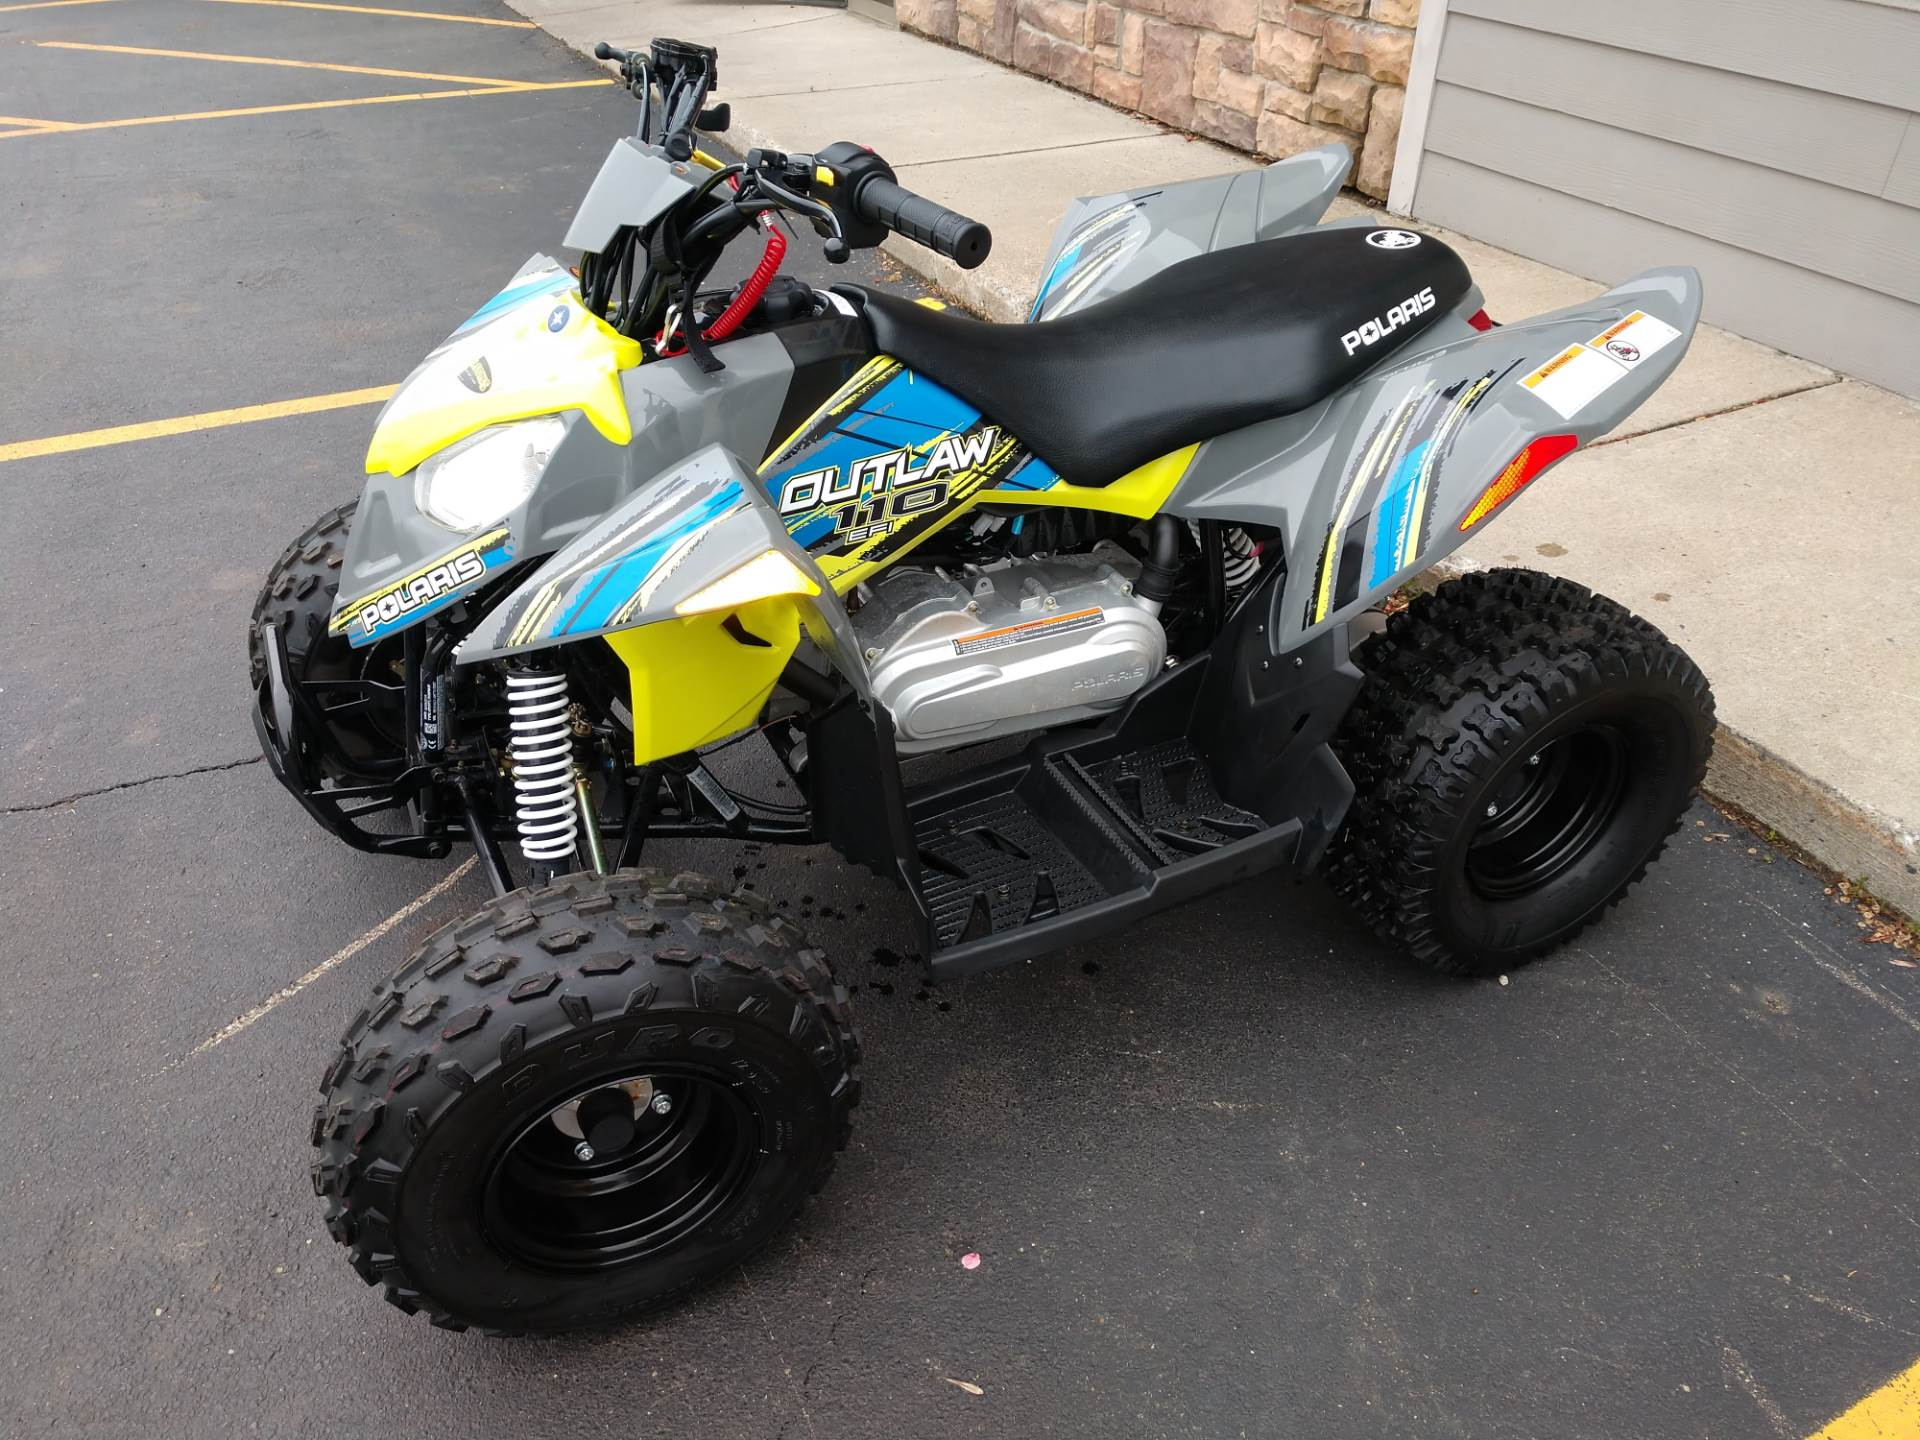 2017 Polaris Outlaw 110 in Hamburg, New York - Photo 3